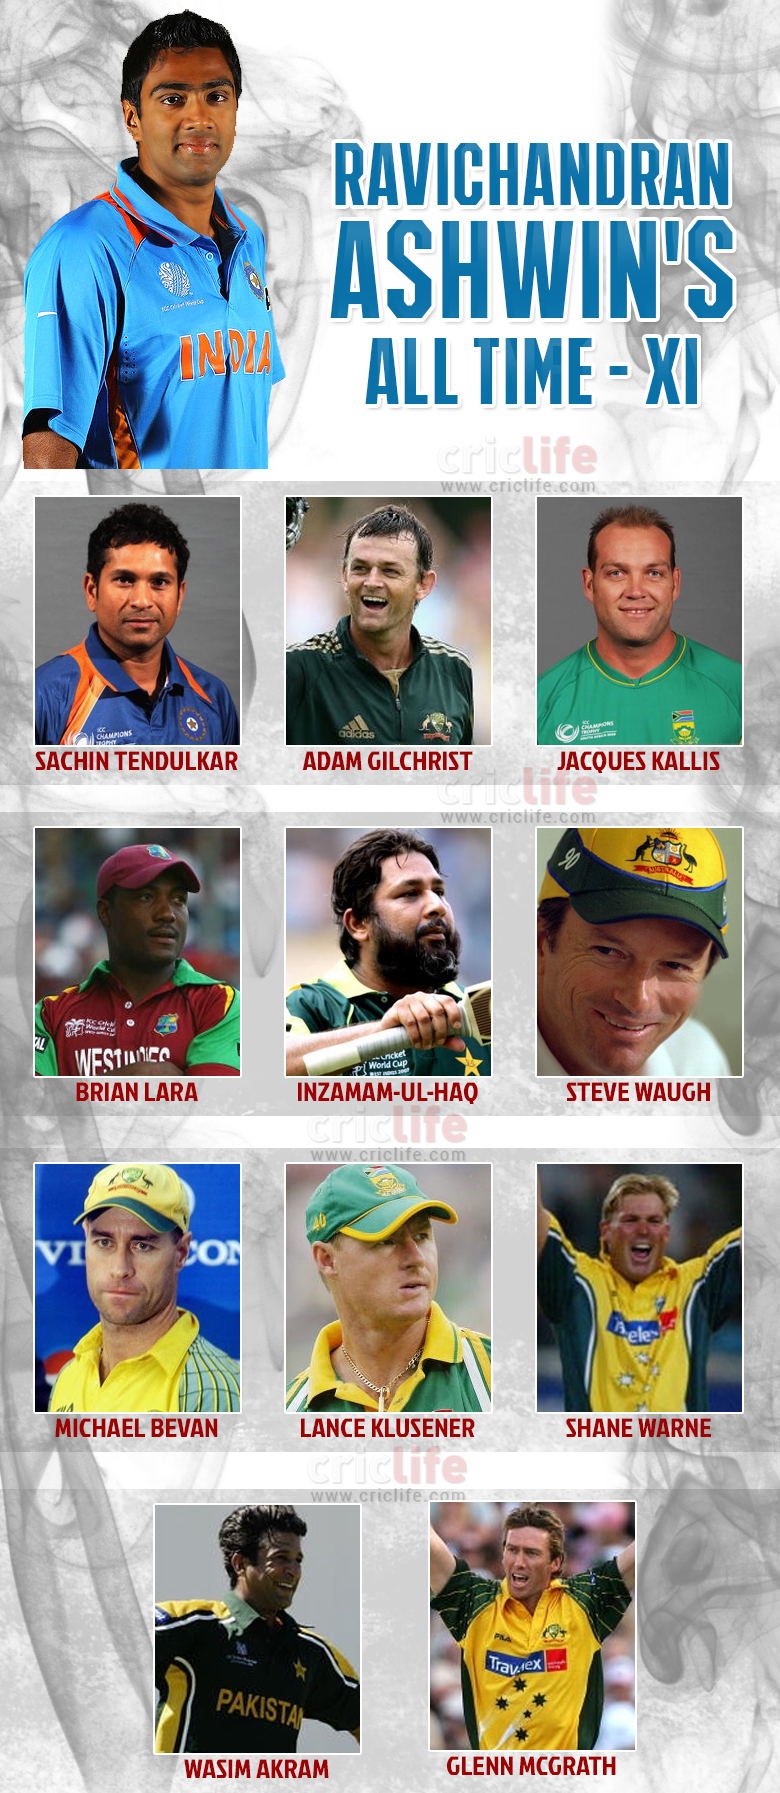 RAVICHANDRAN-ASHWINS-ALL-TIME-ODI-XI